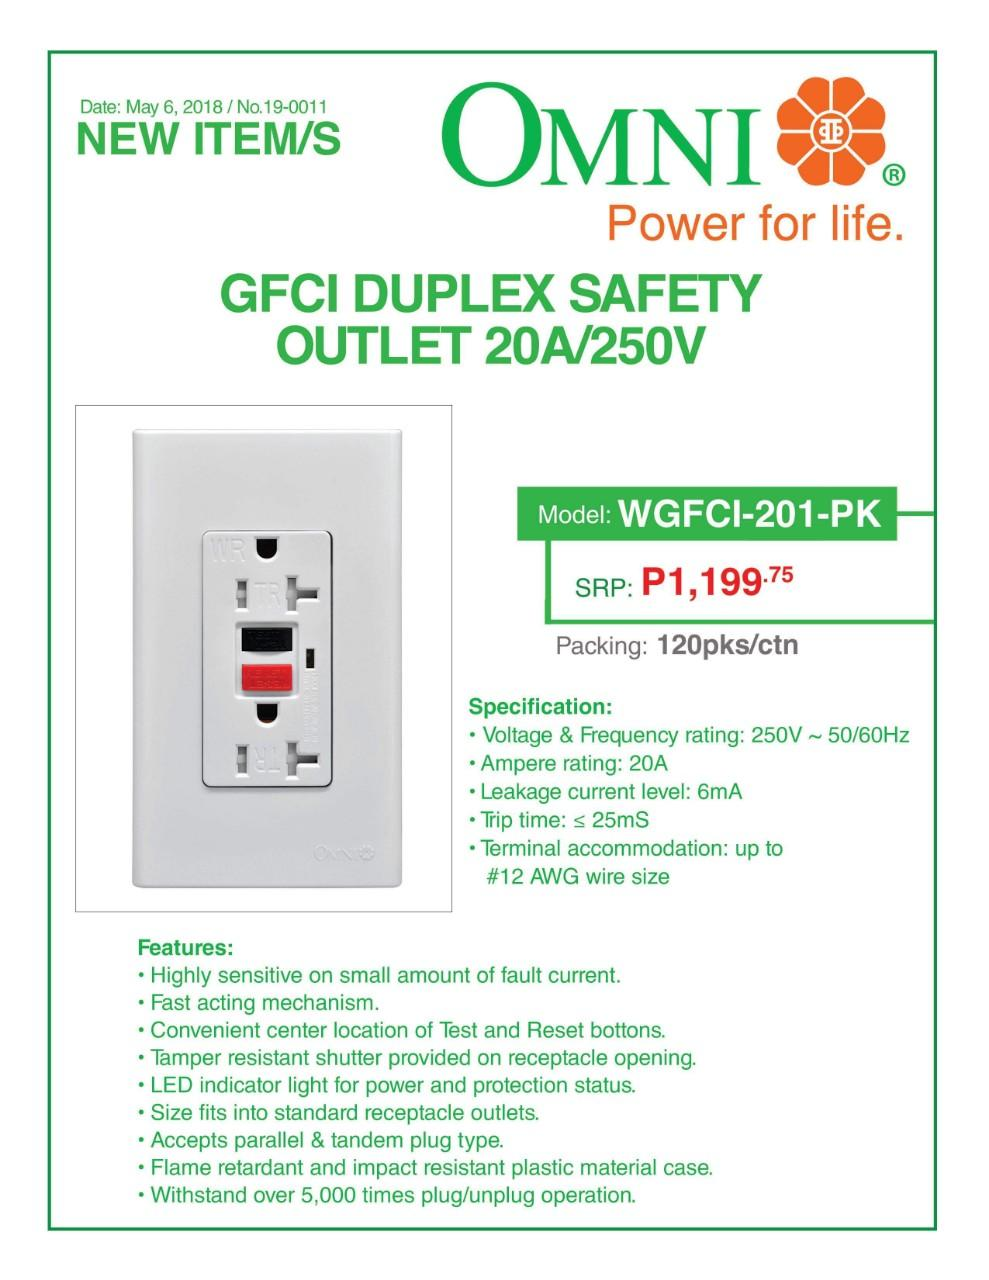 Omni Gfci Outlet Wgfci 201 Pk Buy Sell Online Wires Leads Adapters With Cheap Price Lazada Ph